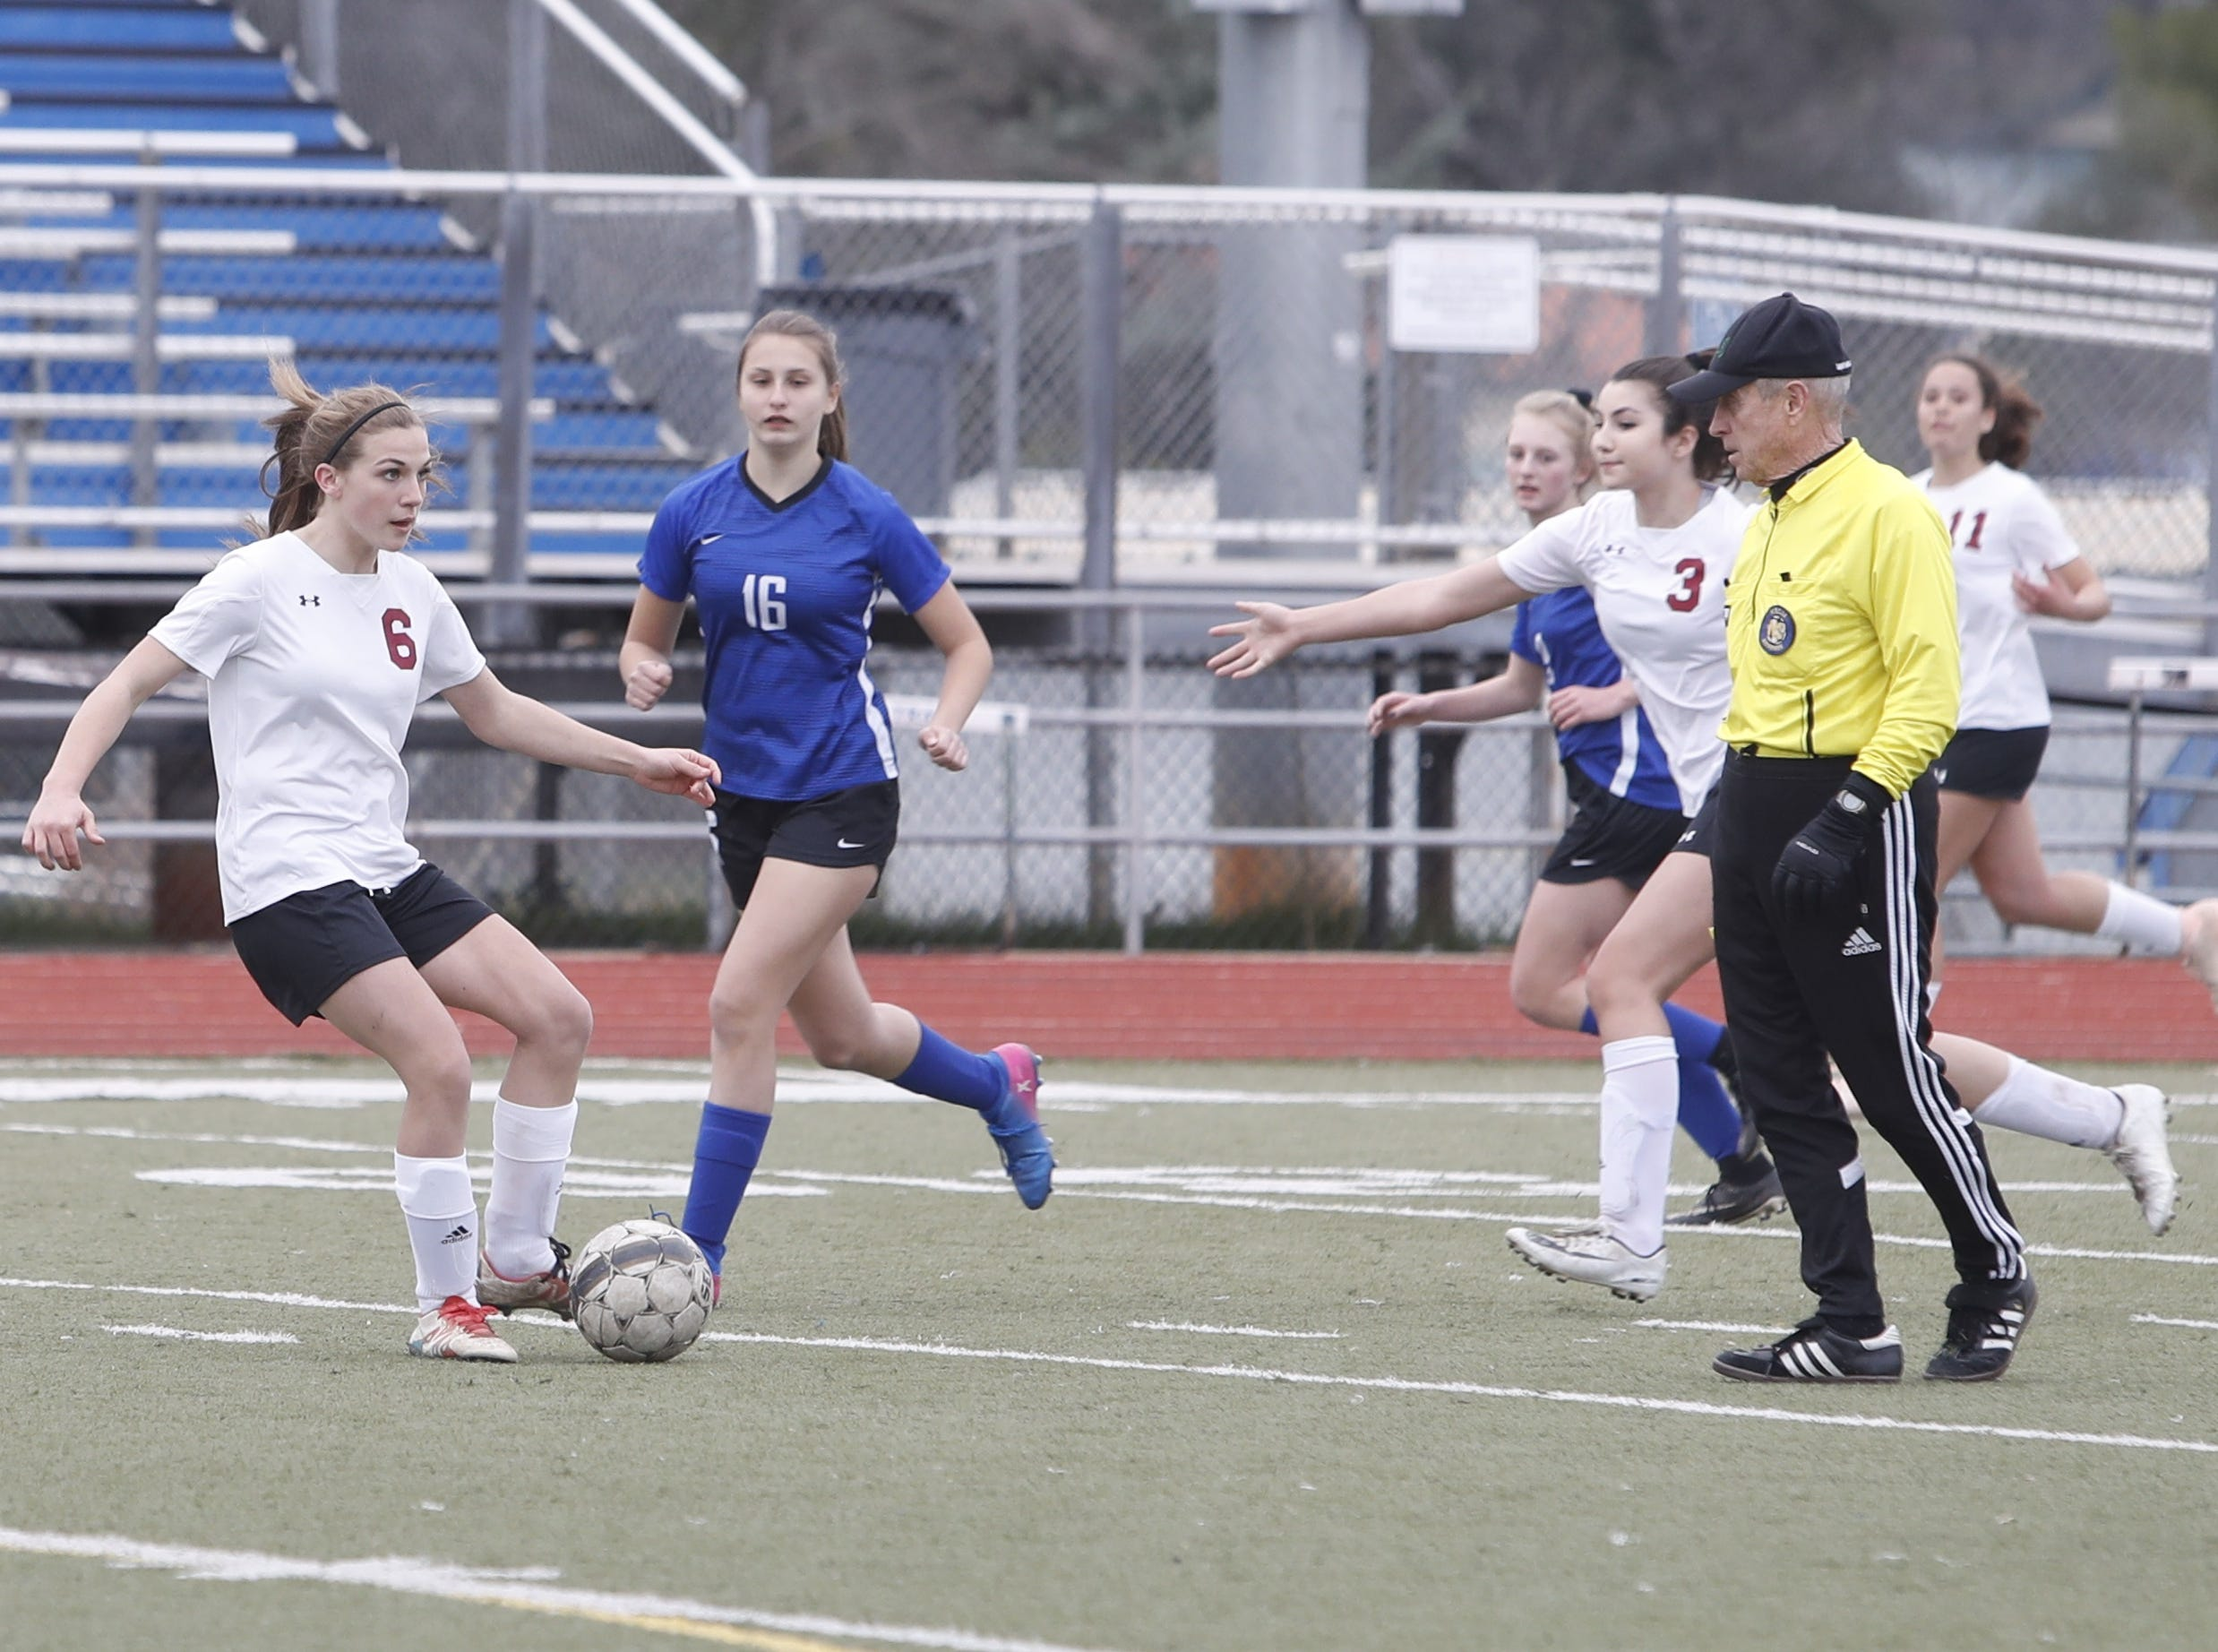 West Valley freshman Samantha Finnegan looks for a teammate during U-Prep's 4-1 win at home over West Valley on Thursday, Feb. 7, 2019.